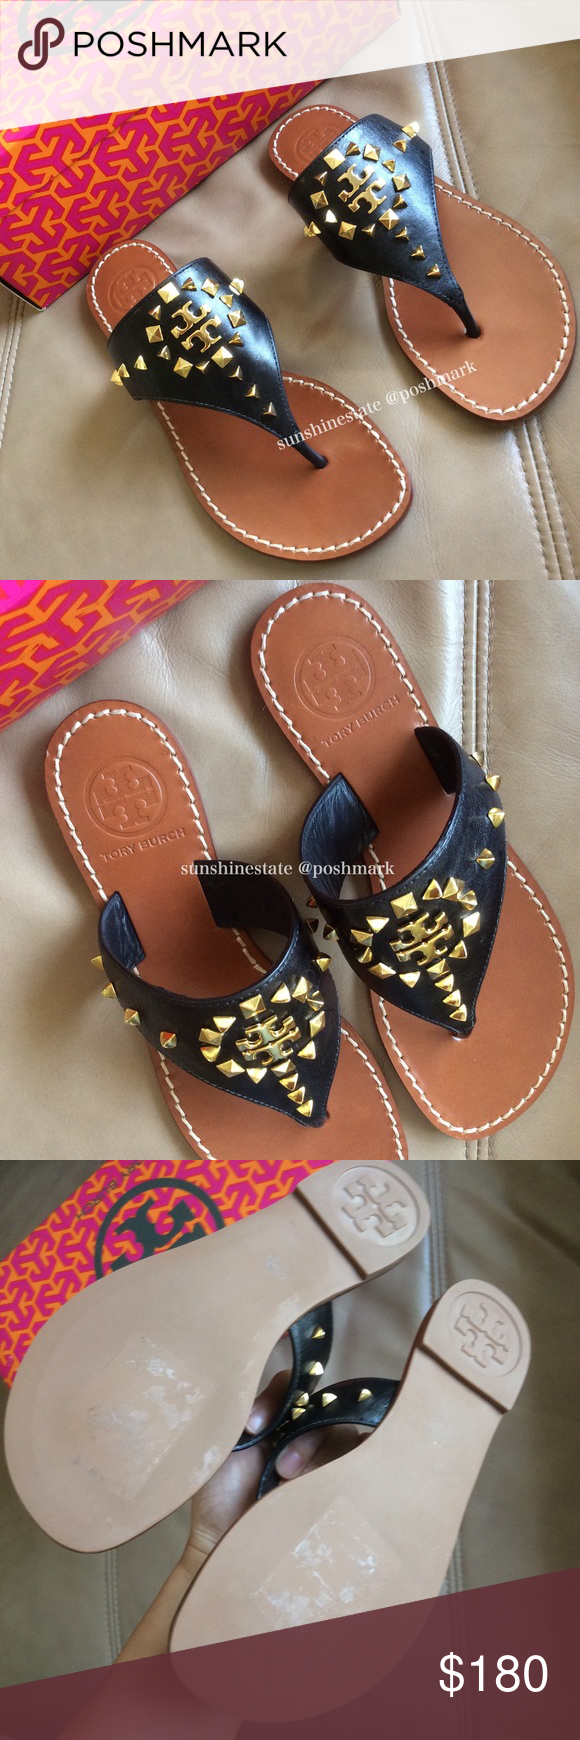 dba1a5594d38 Tory Burch black Dale Studded Thong sandals Leave email if you want to see